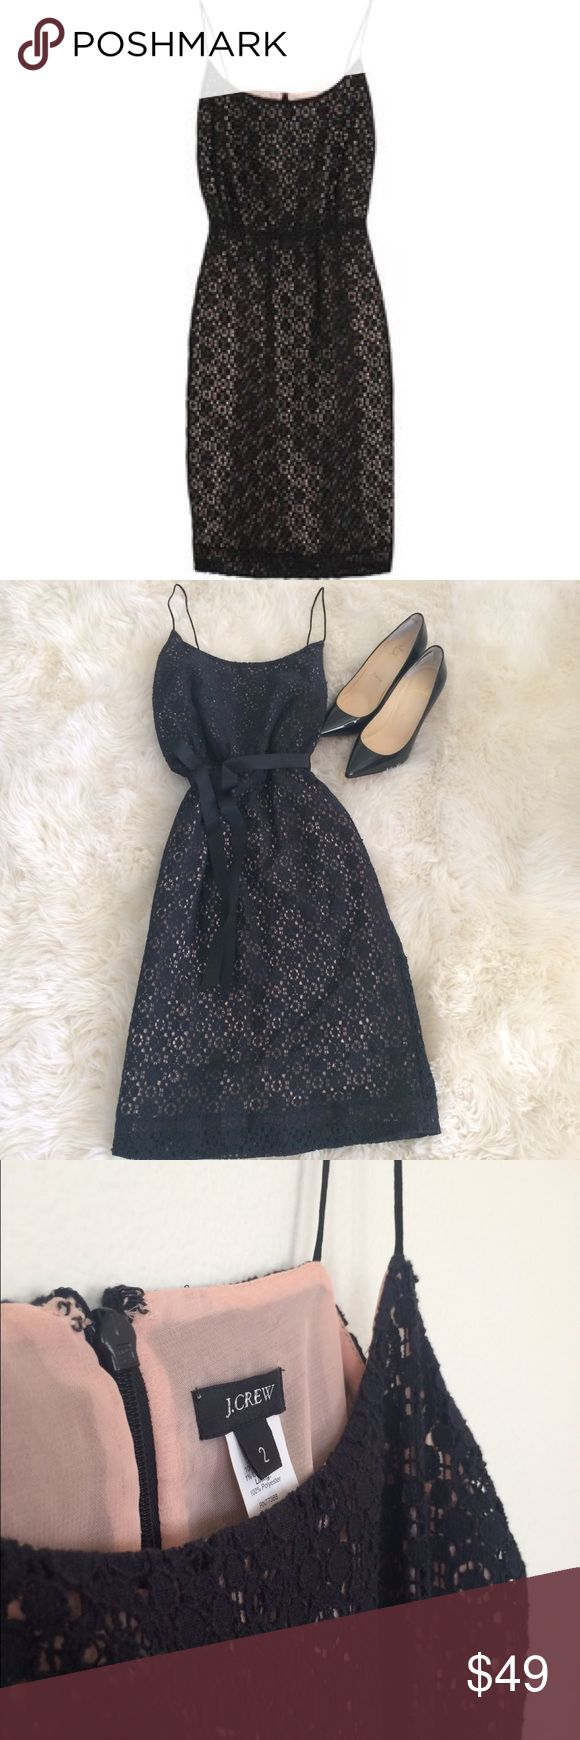 ✨HP✨J. Crew • Lace Blouson Dress • Black Classic Chic HPSpaghetti strap, black lace with shell pink lining; blouson style, this dress is a classic. Zipper in back.  Worn once or twice, in exceptional condition. •Price firm unless bundled   🌟HOLIDAY PRICE DROP J. Crew Dresses